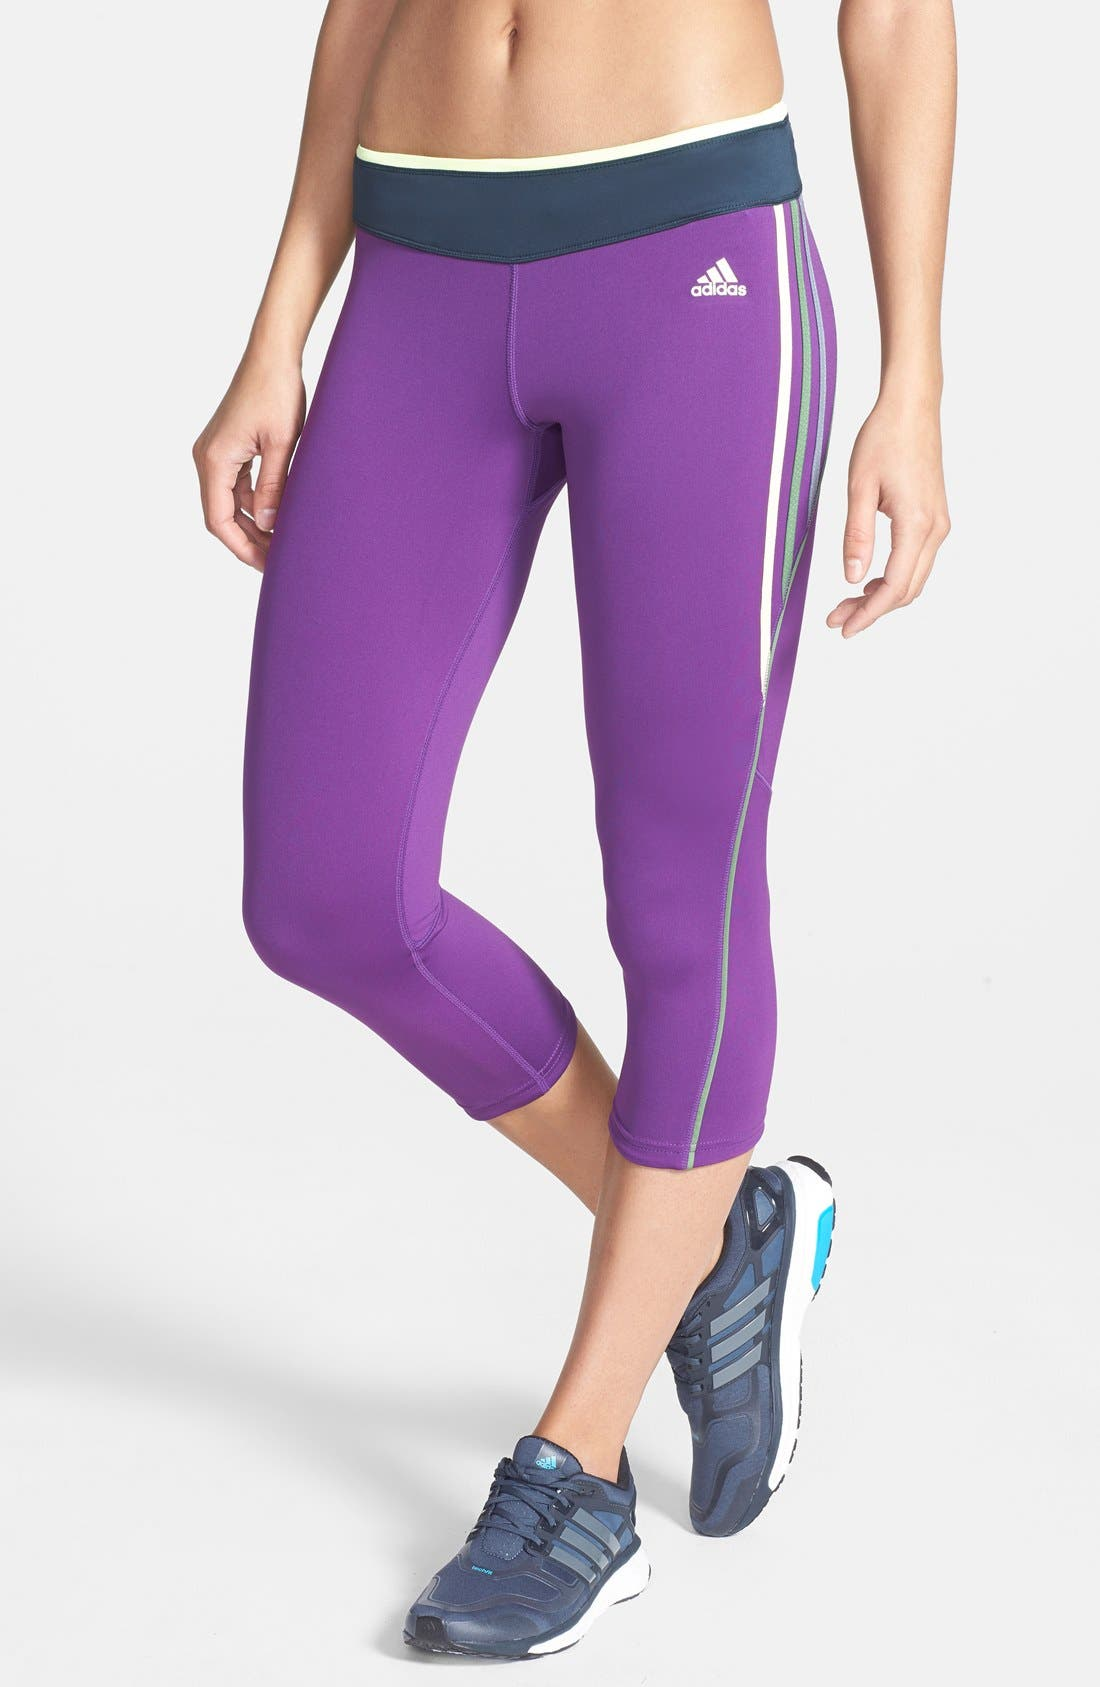 Alternate Image 1 Selected - adidas 'AKTIV' Three Quarter Tights